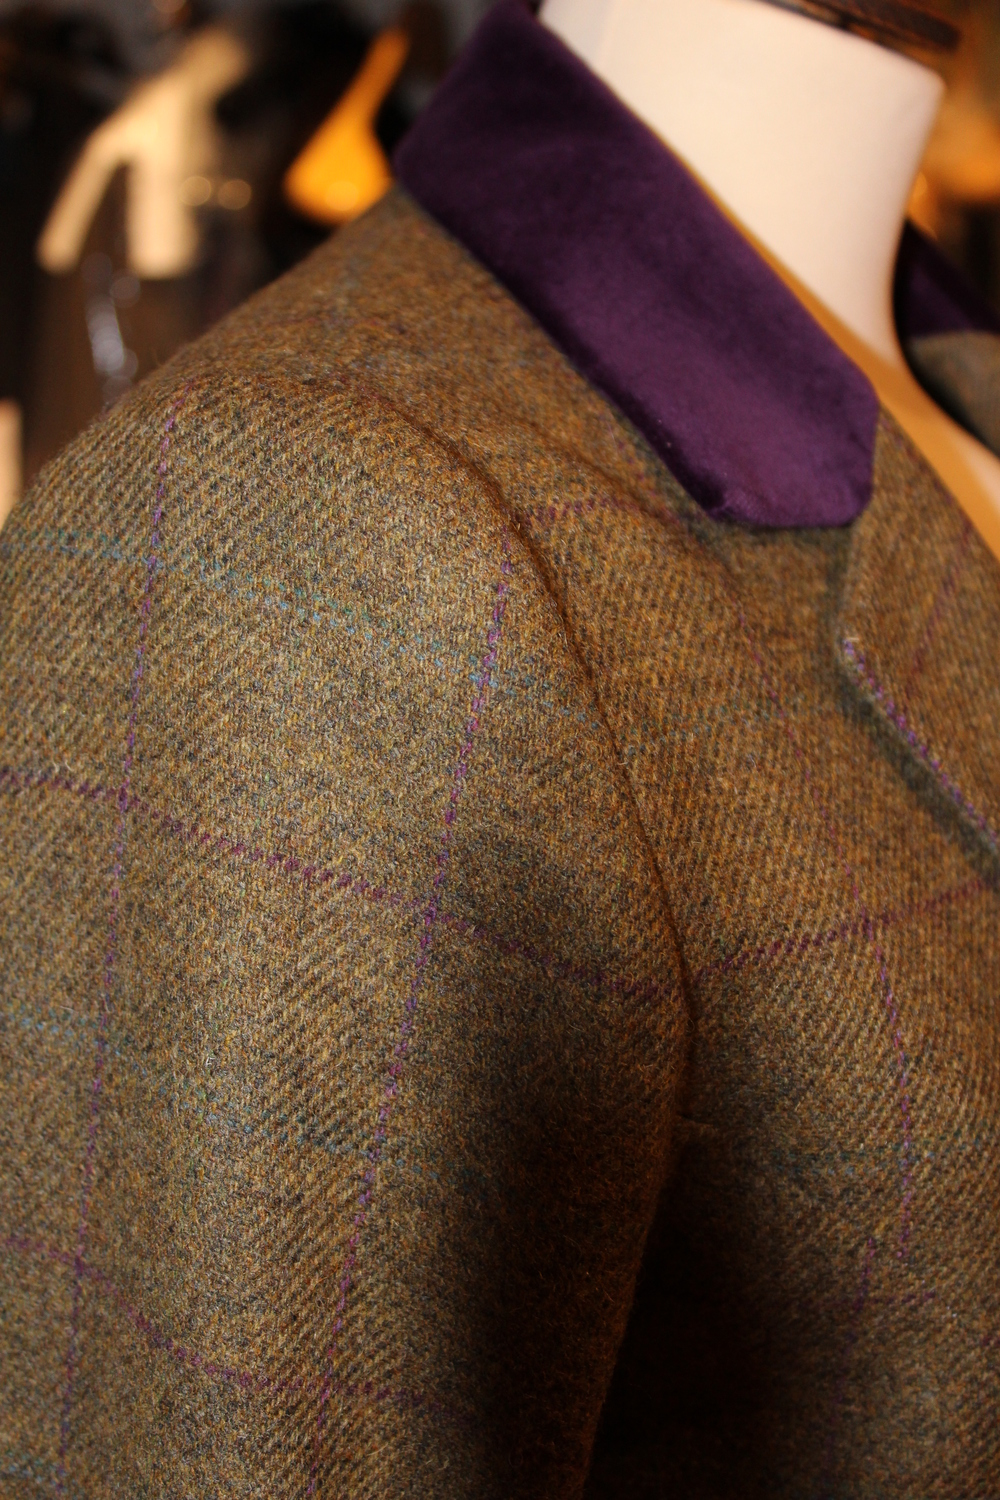 Ladies-tweed-suit-jacket-bespoke-Brook Taverner-velvet-collar-all-UK-made-tailored.jpg